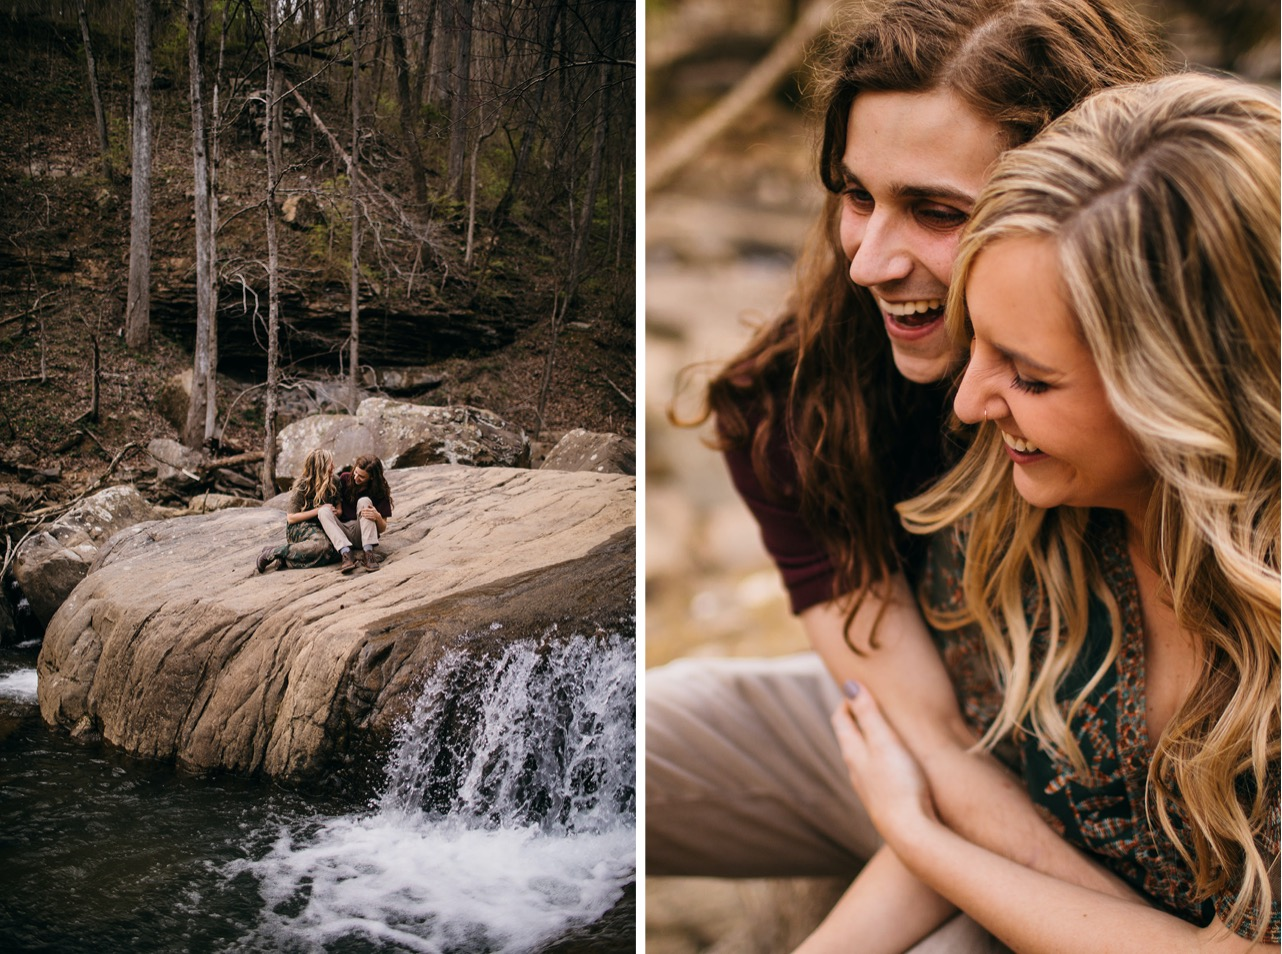 An engaged couple sits together on a wide rock in Middle Creek near Chattanooga.